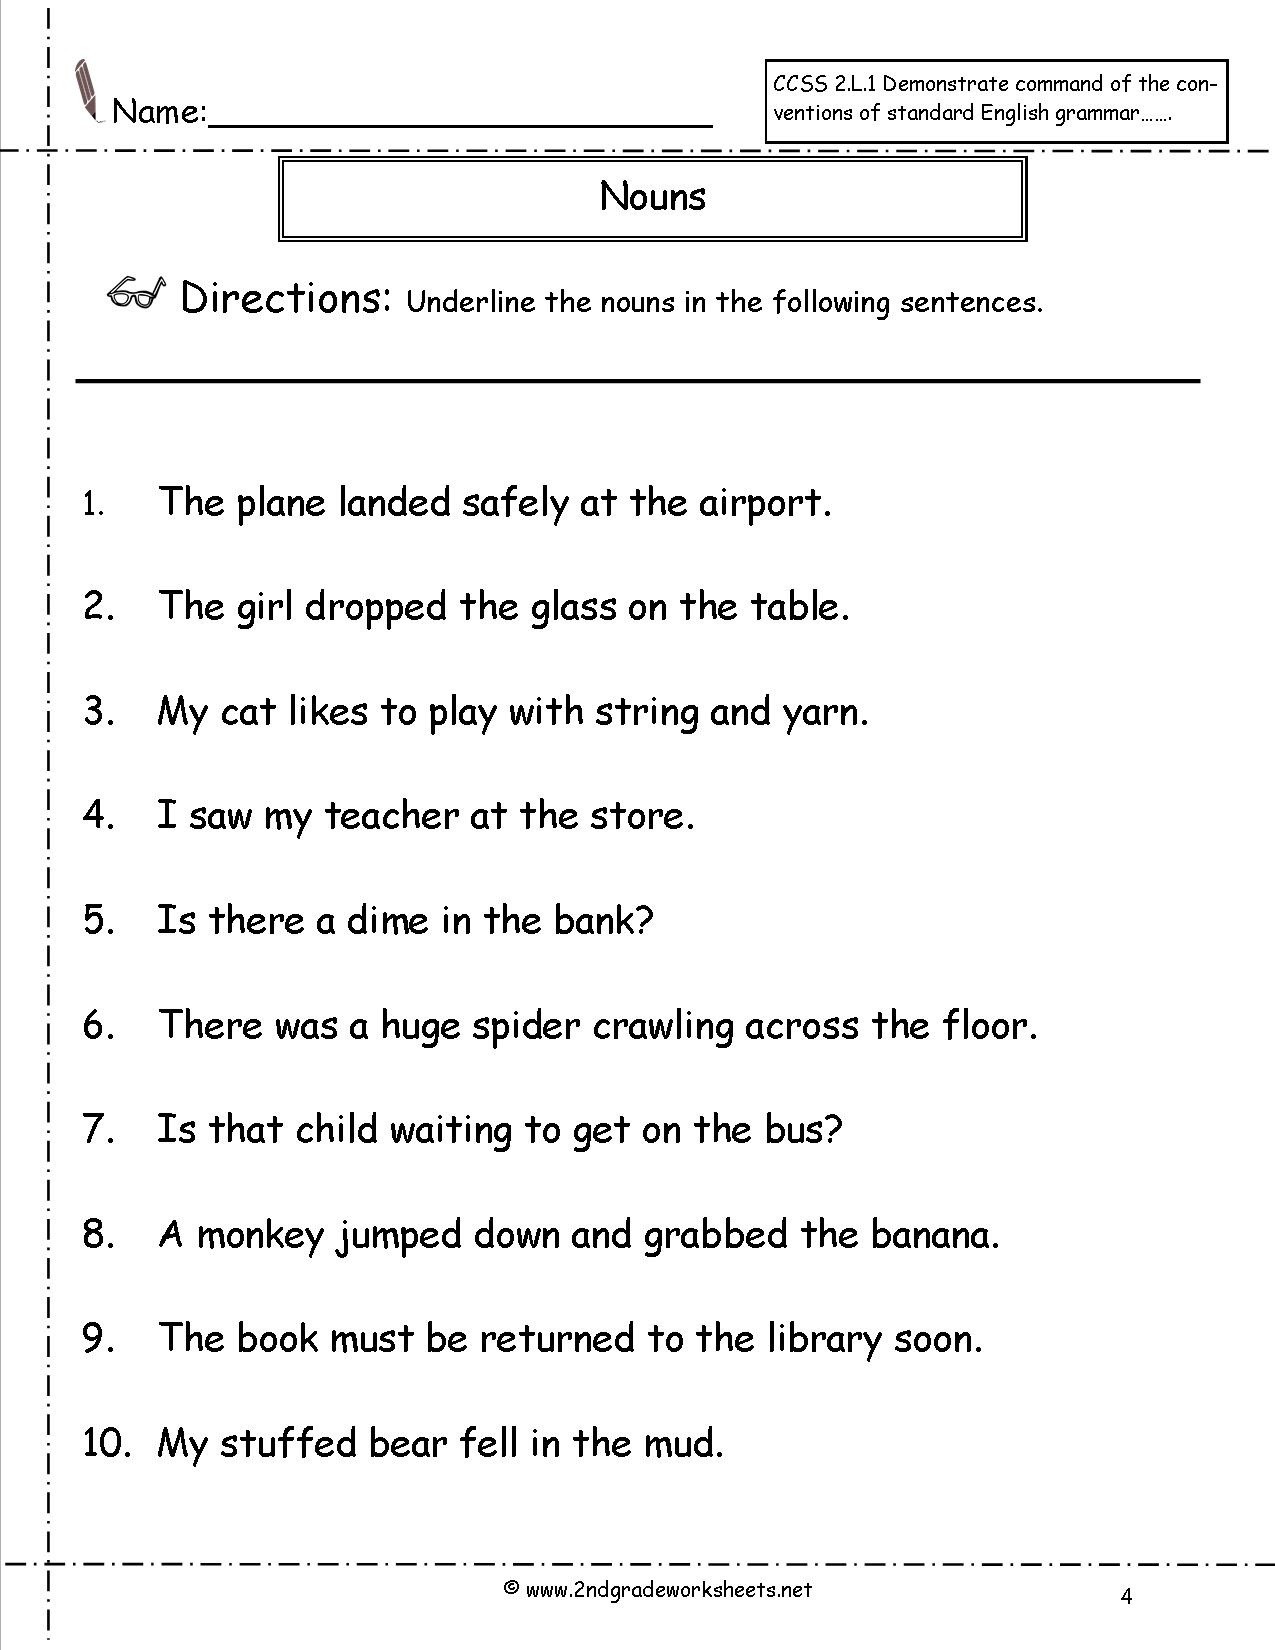 20 Second Grade Pronouns Worksheet